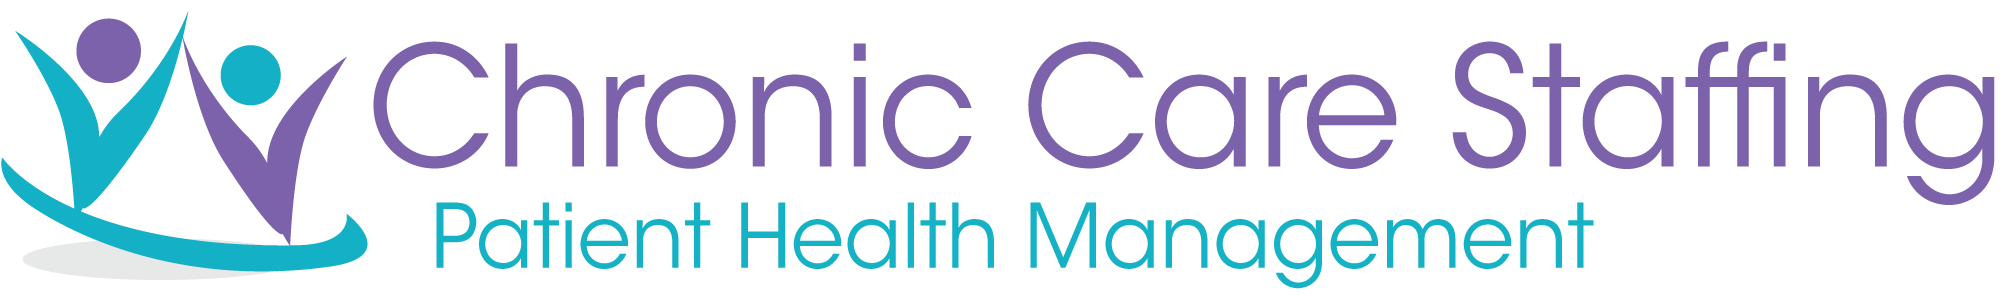 Chronic Care Staffing | Patient Health Management